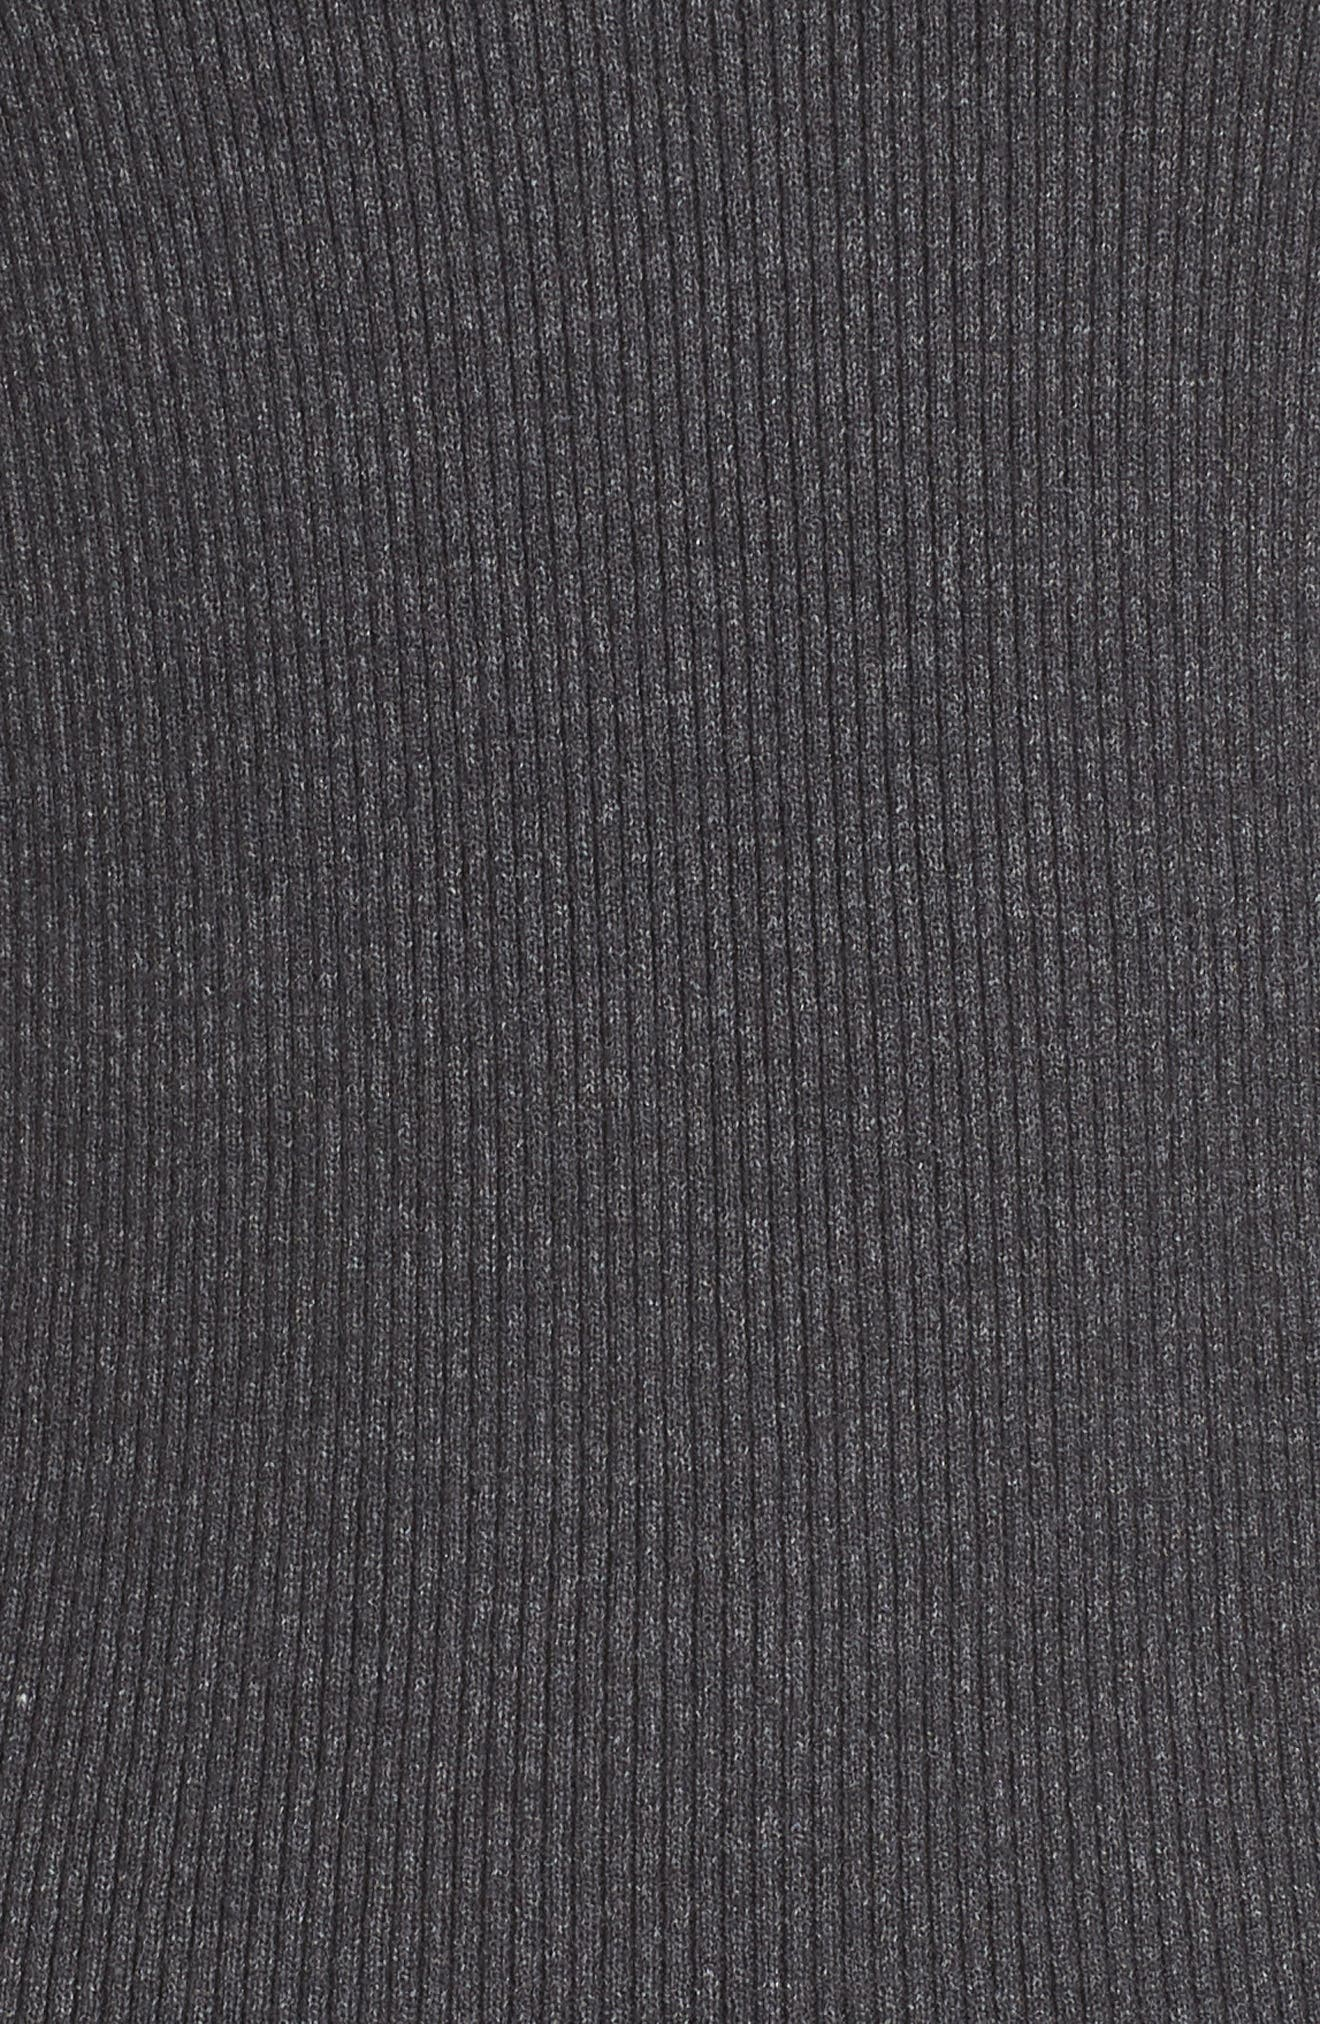 Rib Knit Pullover,                             Alternate thumbnail 5, color,                             GREY MED CHARCOAL HEATHER